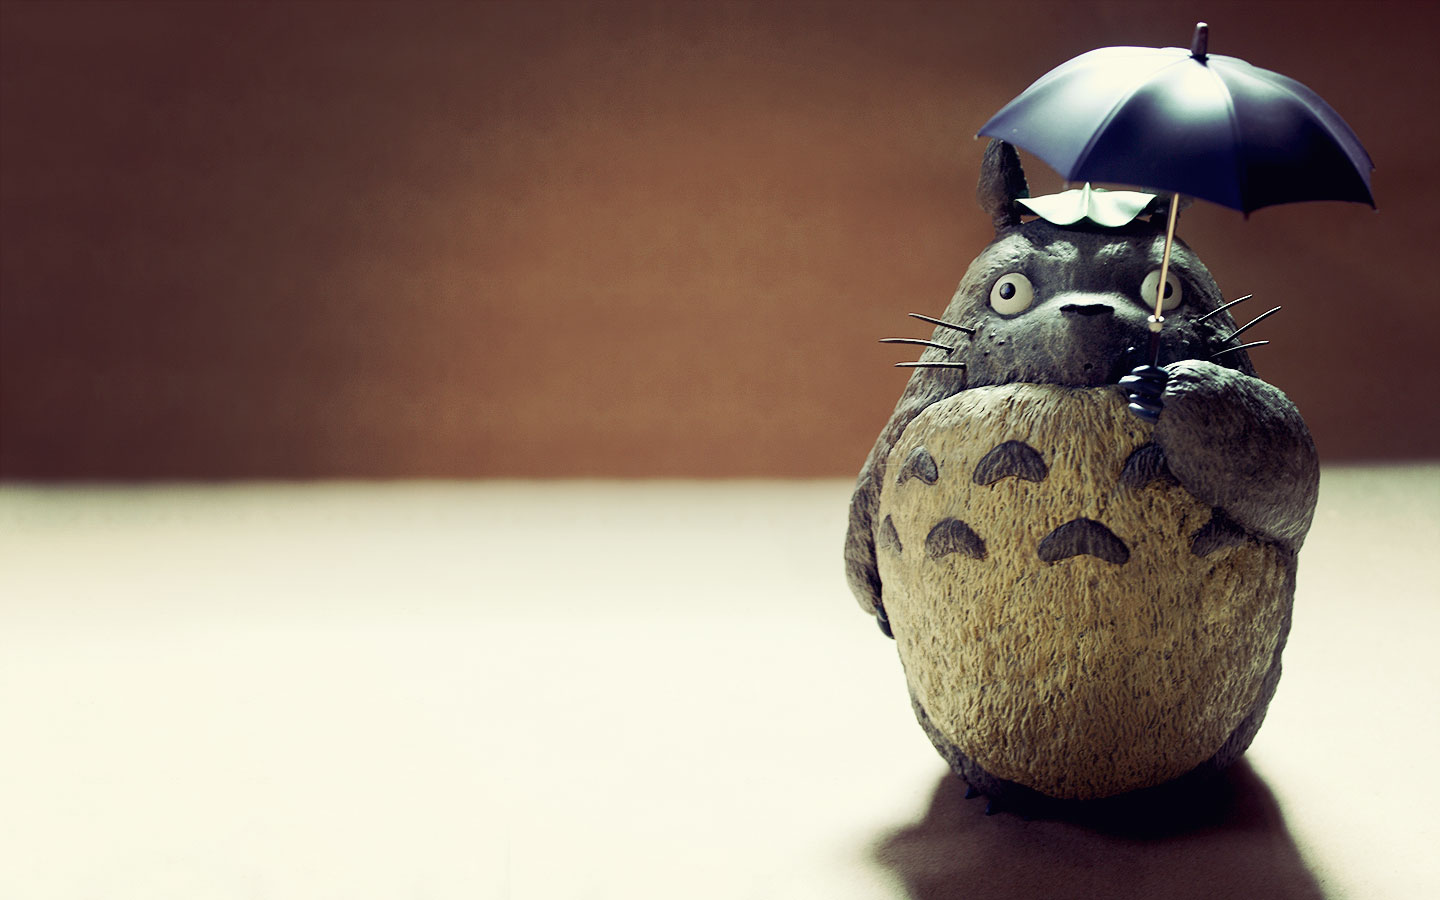 Totoro Cute Studio Ghibli Wallpaper 1440x900 Full HD Wallpapers 1440x900